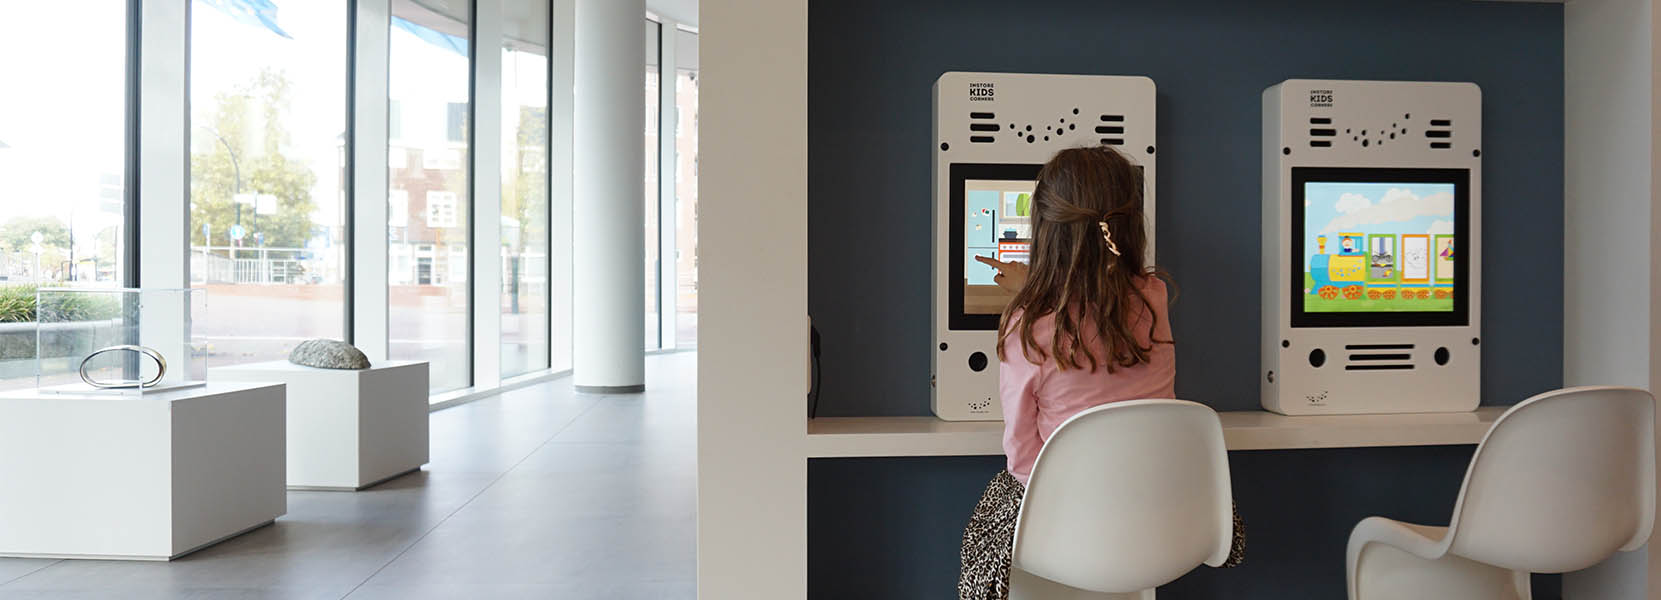 On this image you can see an interactive play system in a public area